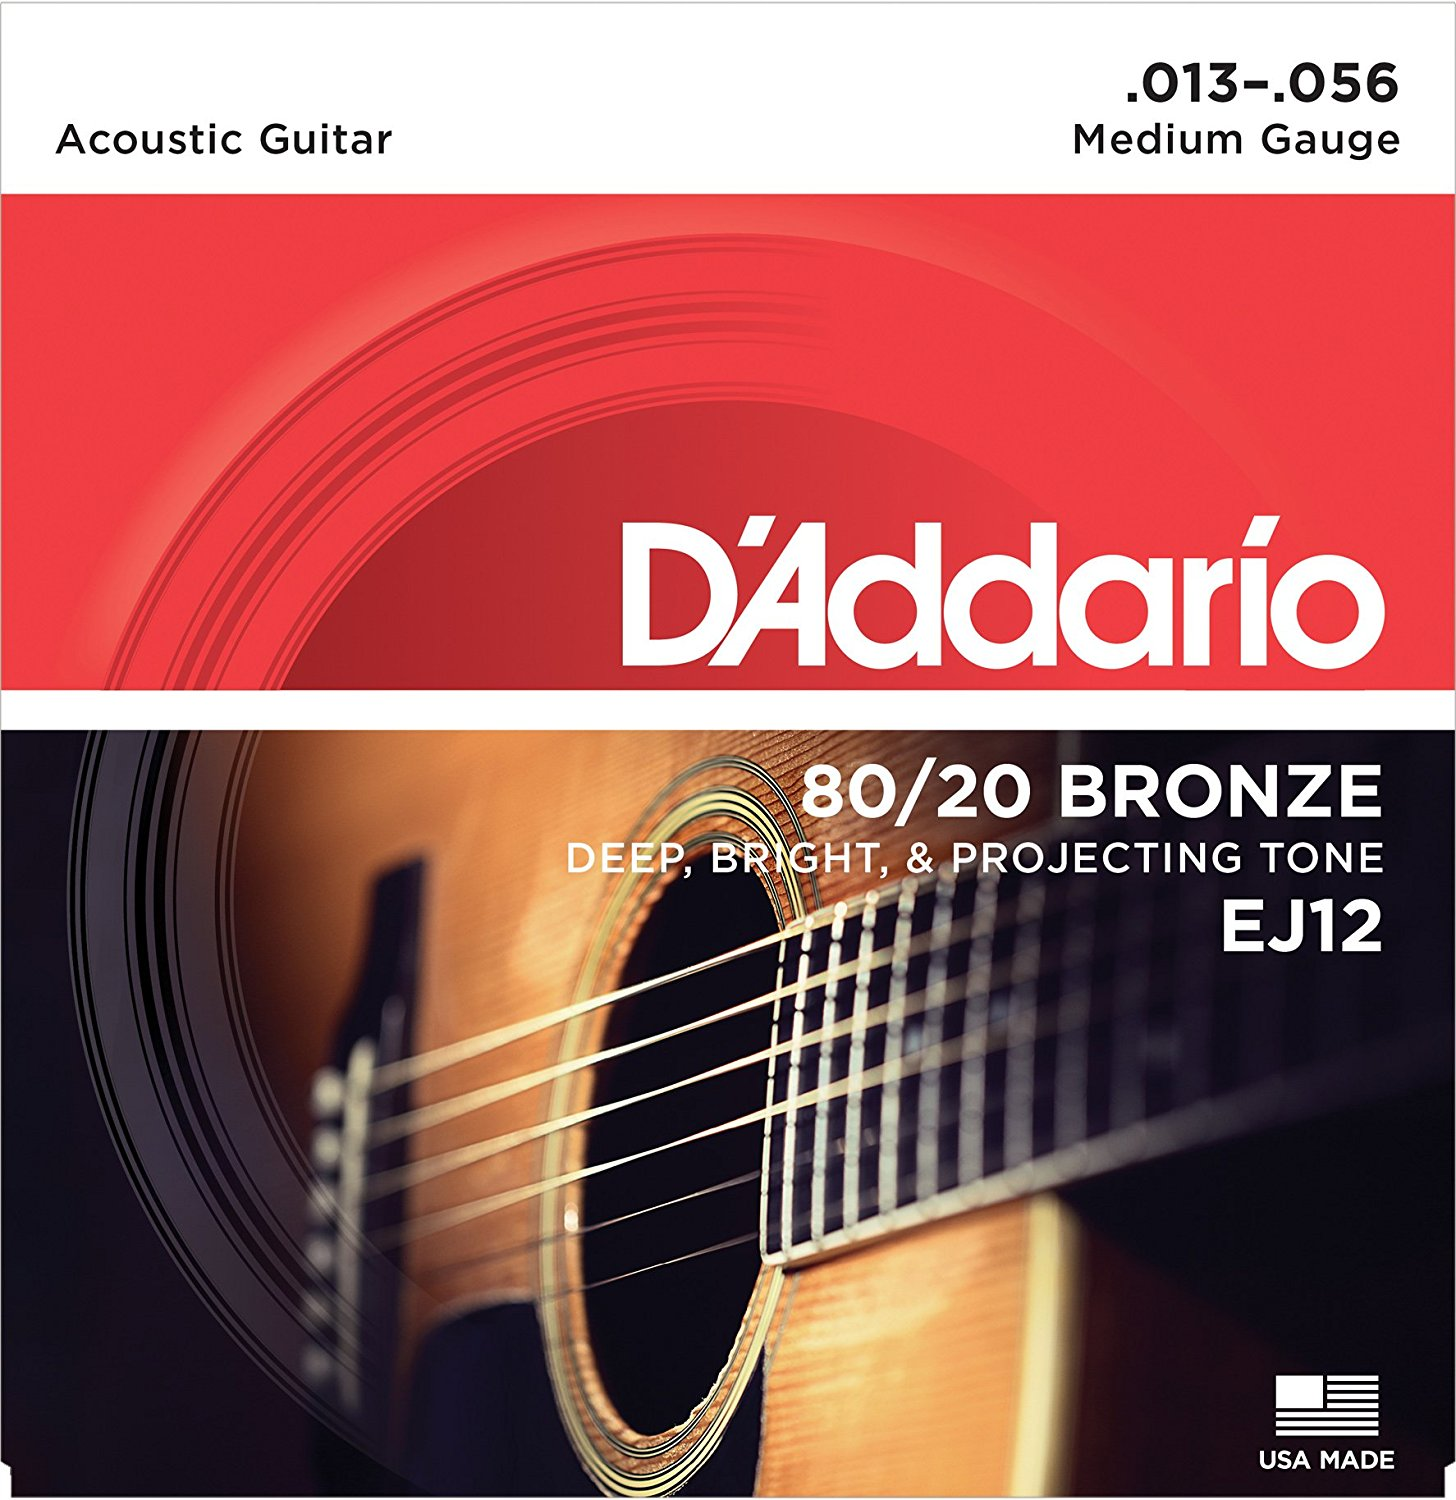 D Addario EJ12 80/20 Bronze Acoustic Guitar Strings, Medium, 13-56